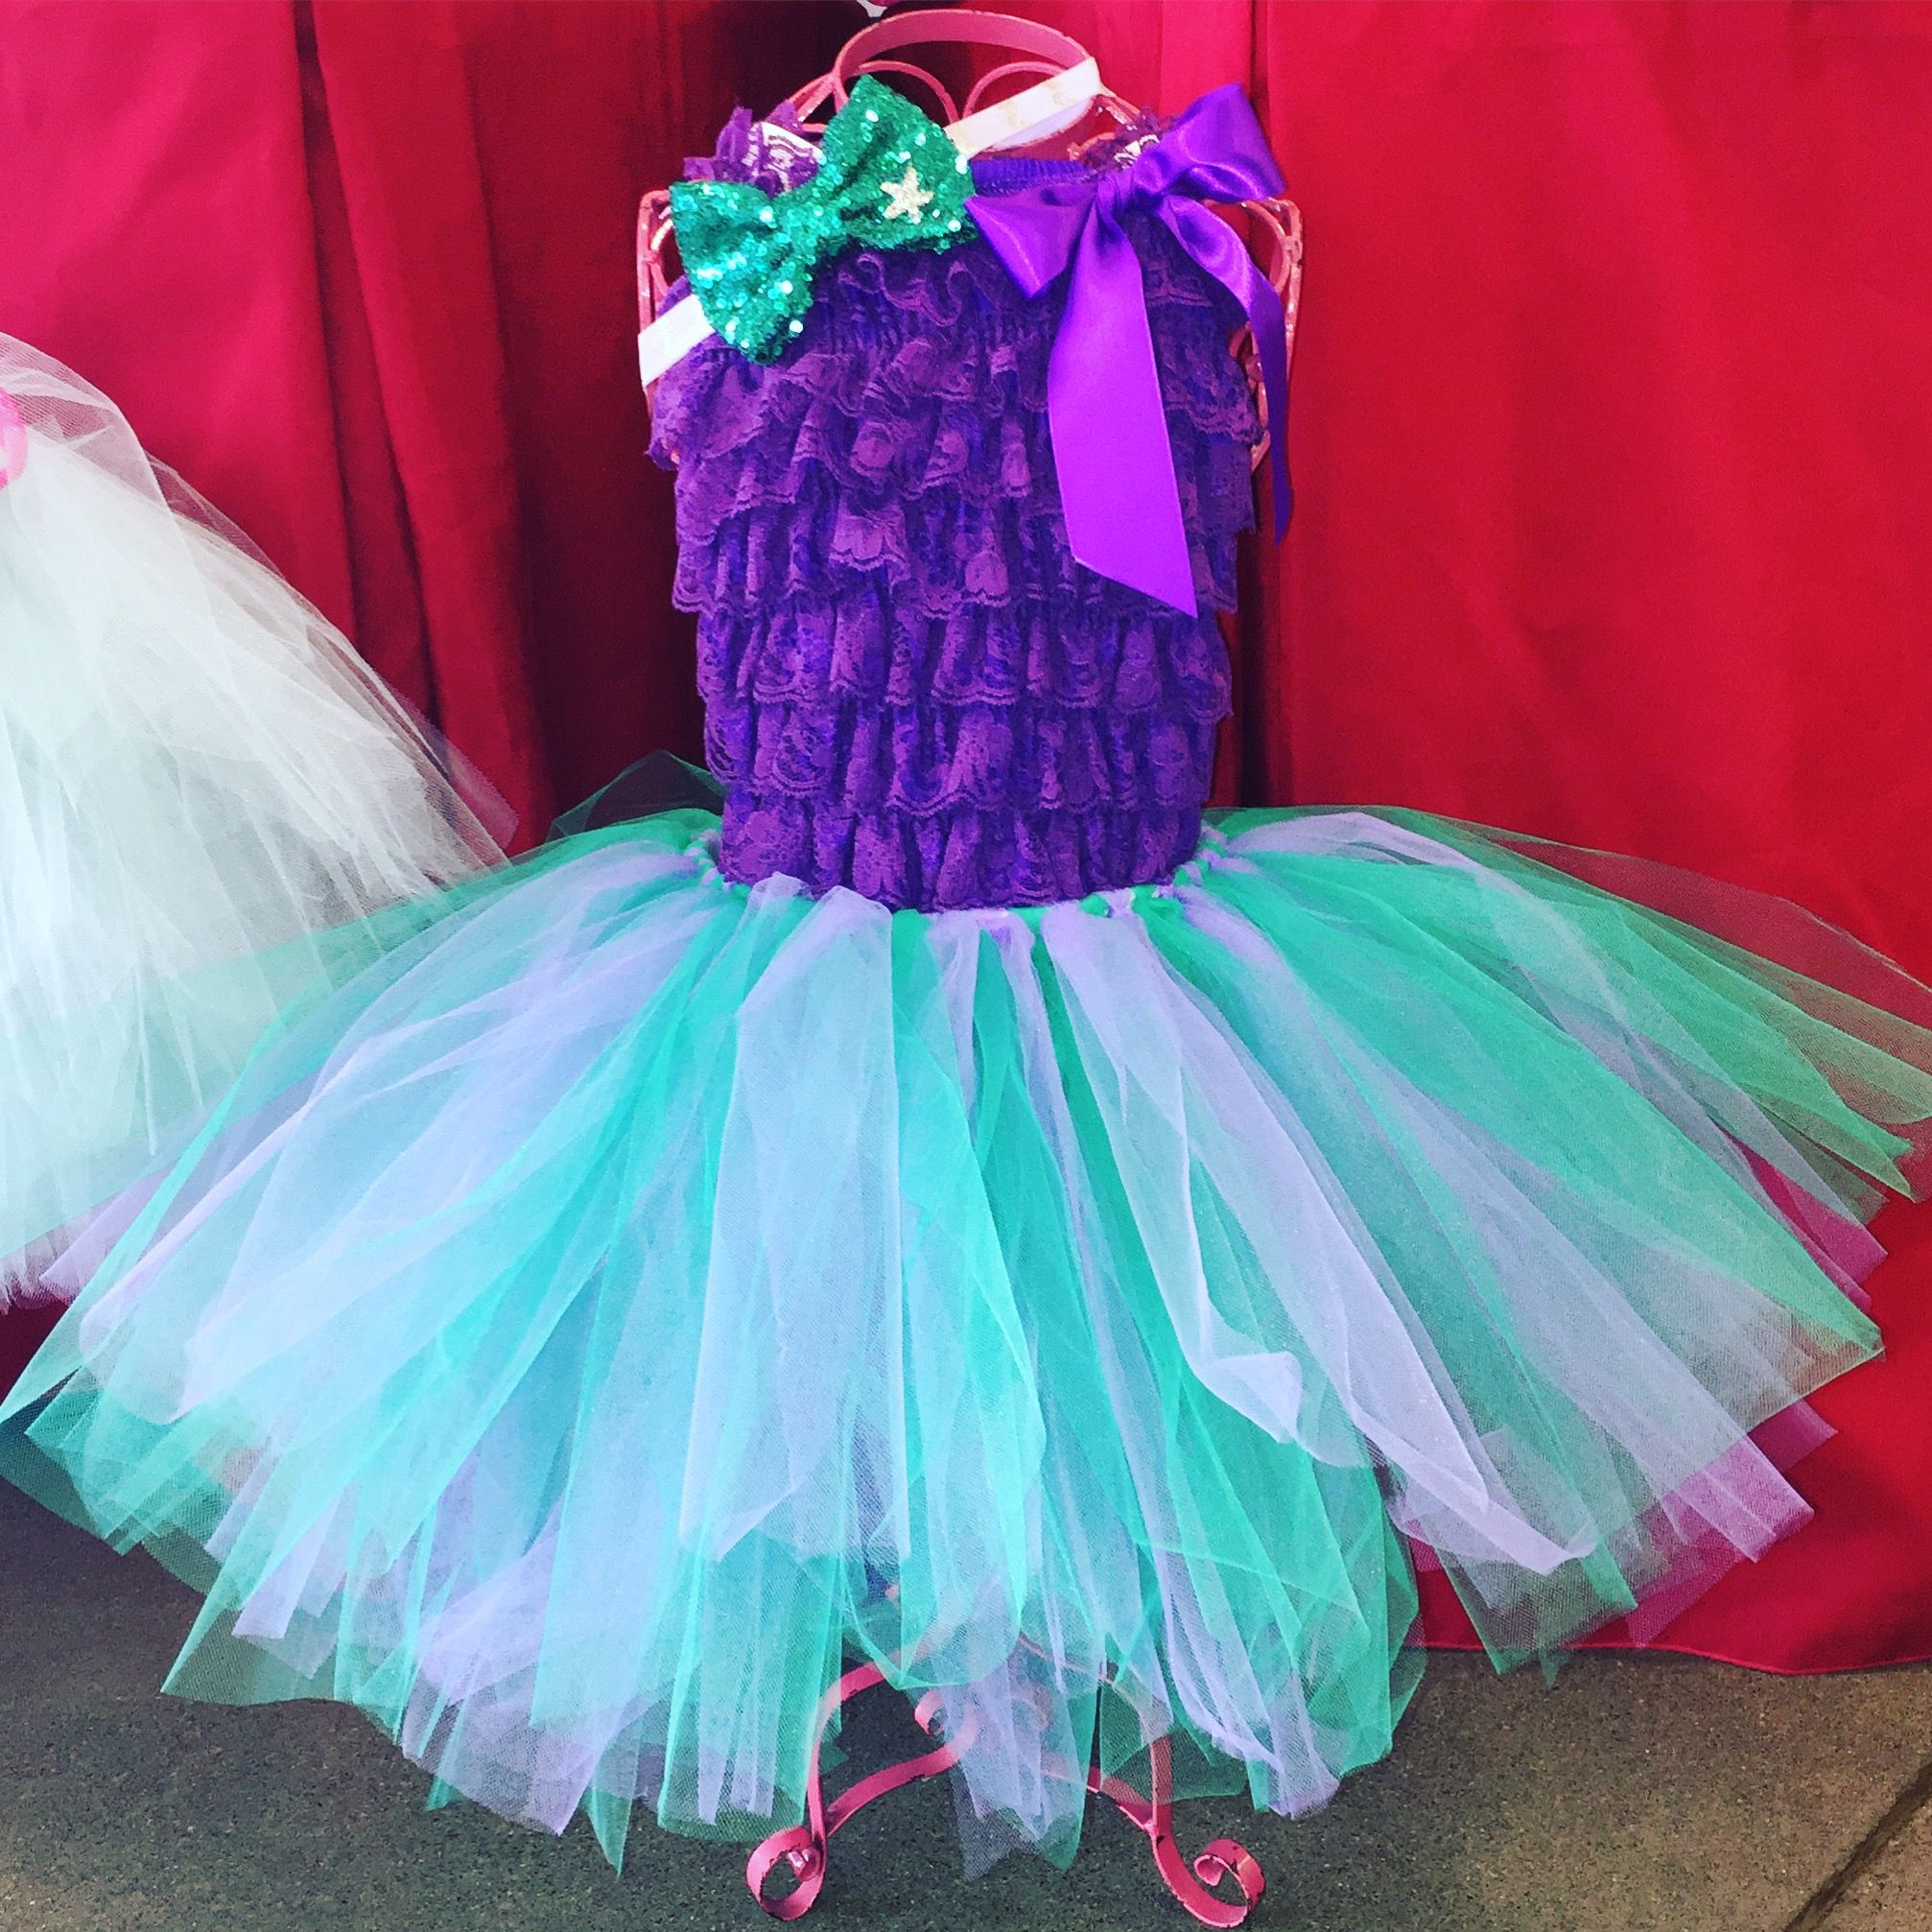 Pin by S G on SB Creations Tutu's Tulle skirt, Tulle, Tutu